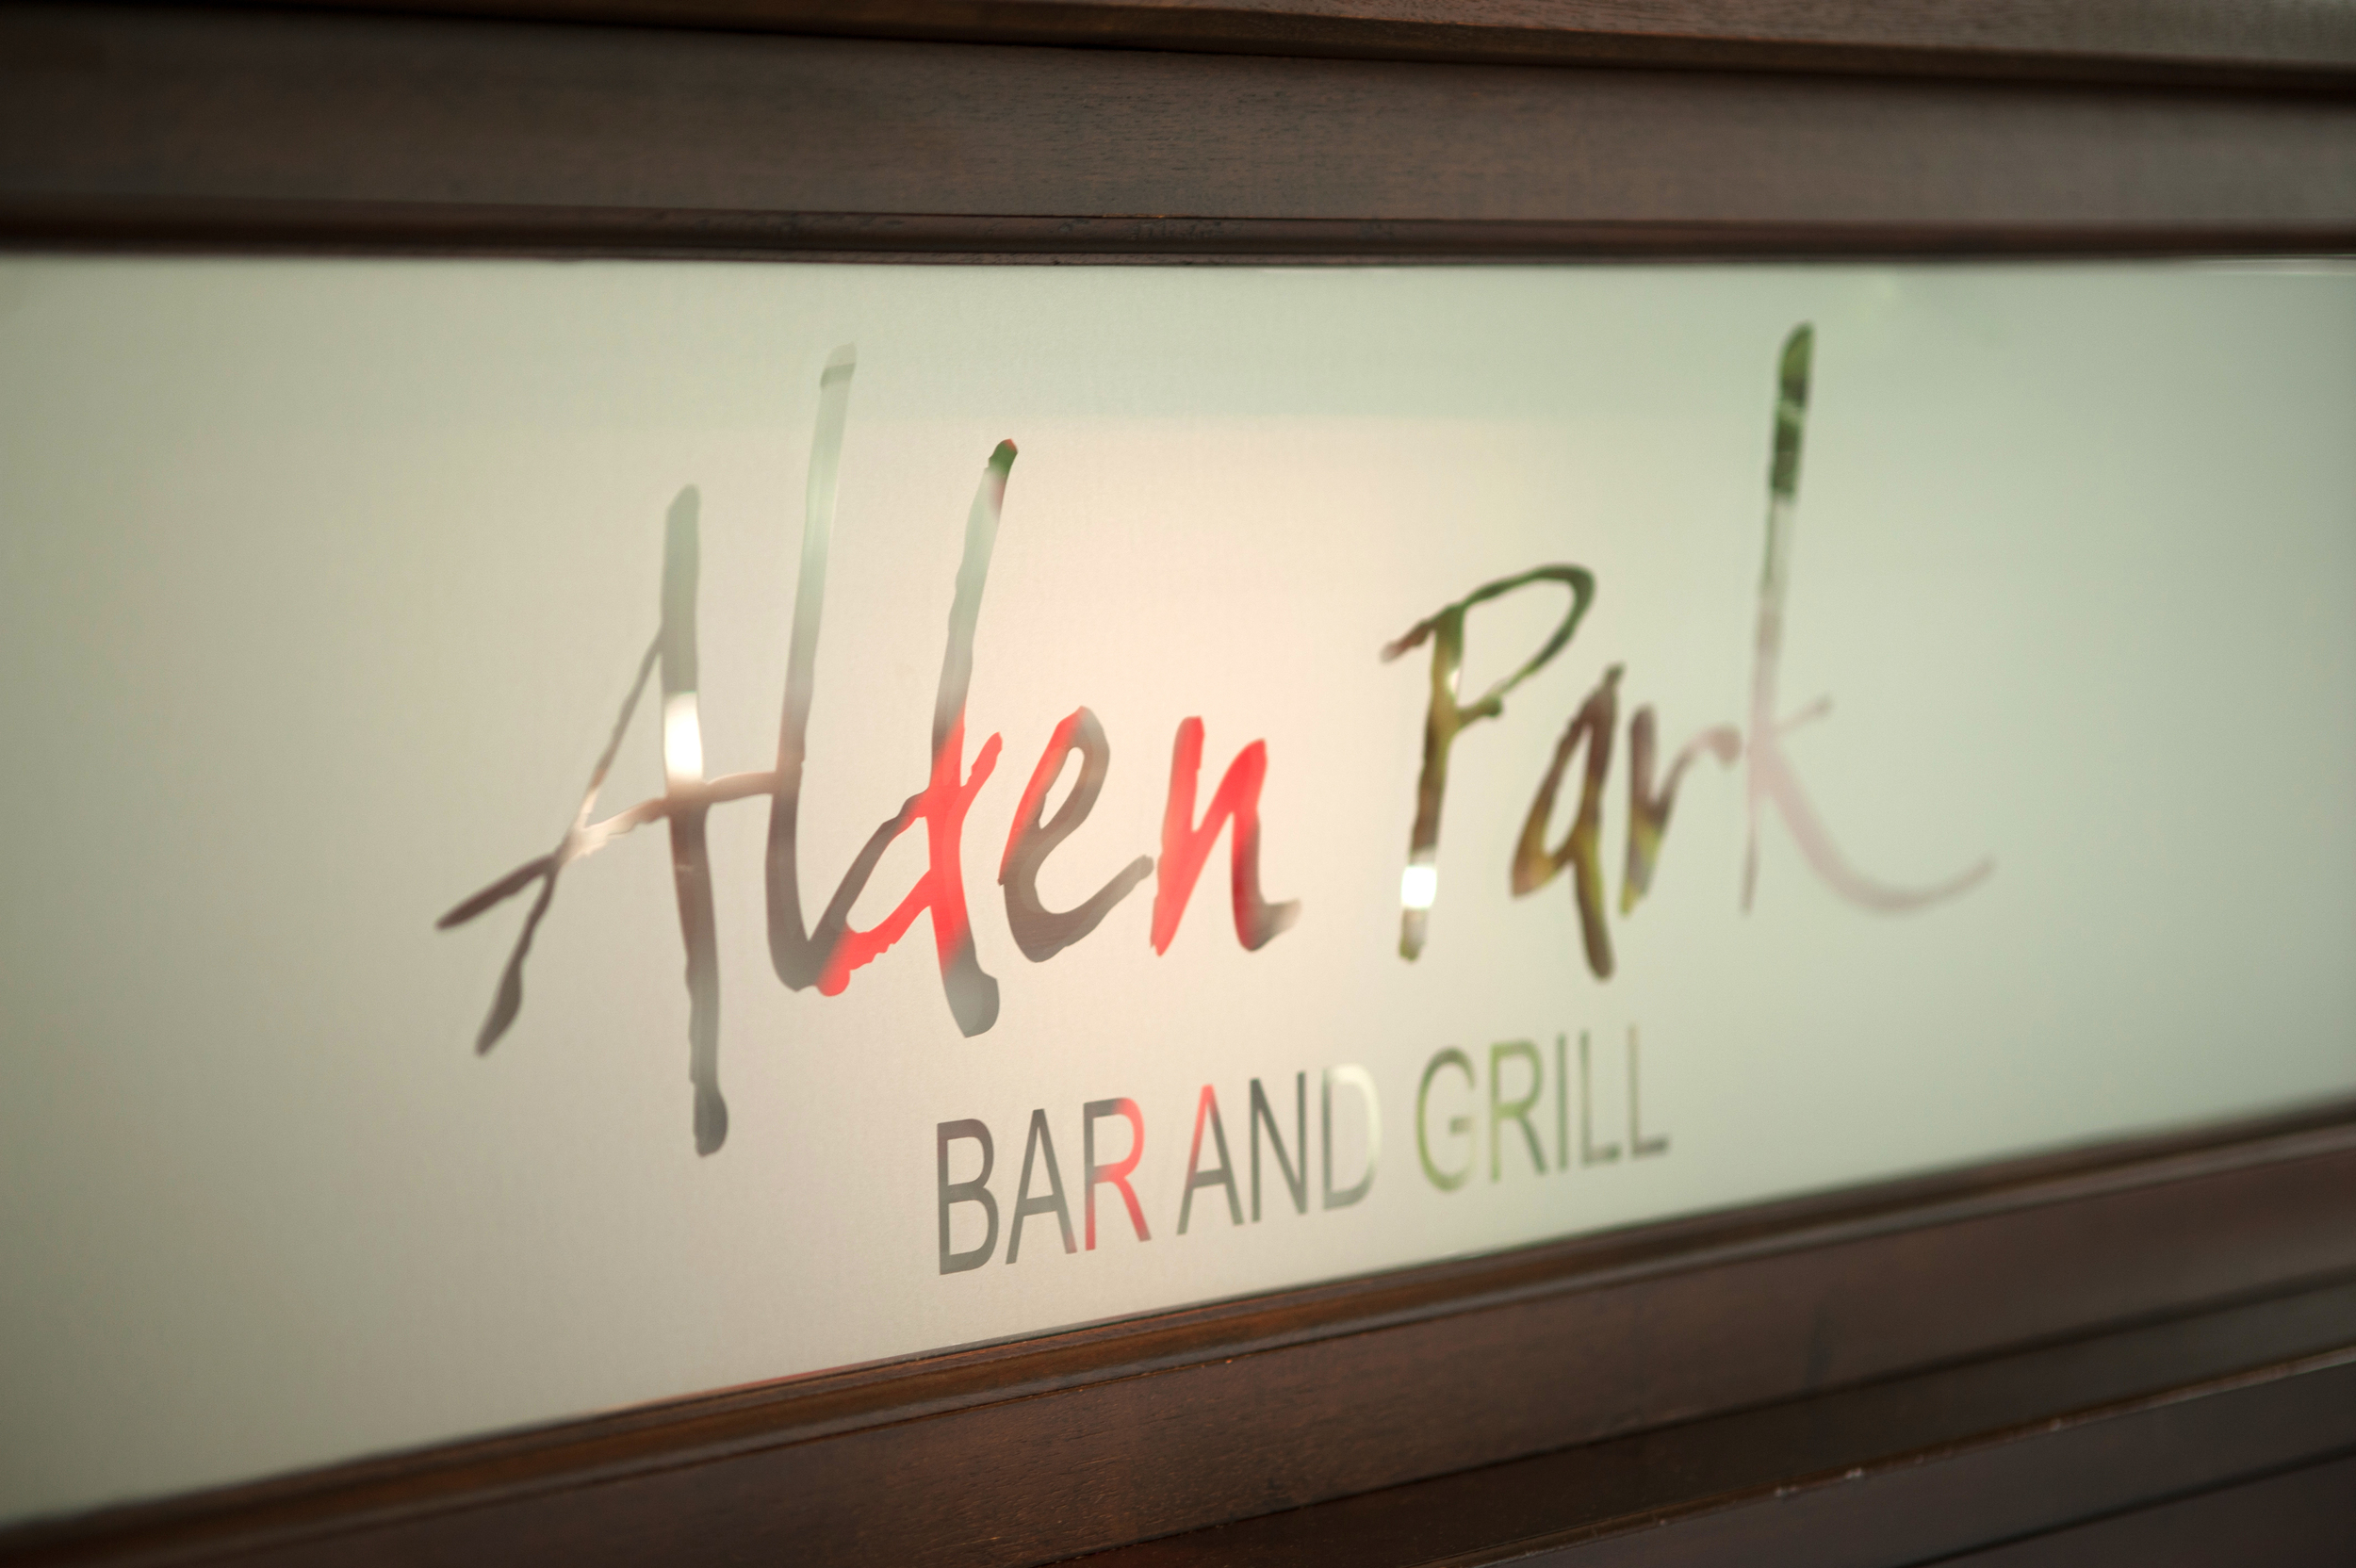 Alden Park Bar and Grill, Professional Photographer, Plymouth, South Shore, Cape Cod Professional Photographer, Cape Cod Wedding Photographer, family Photographer plymouth ma, South Shore Photographer, Commercial Photographer,